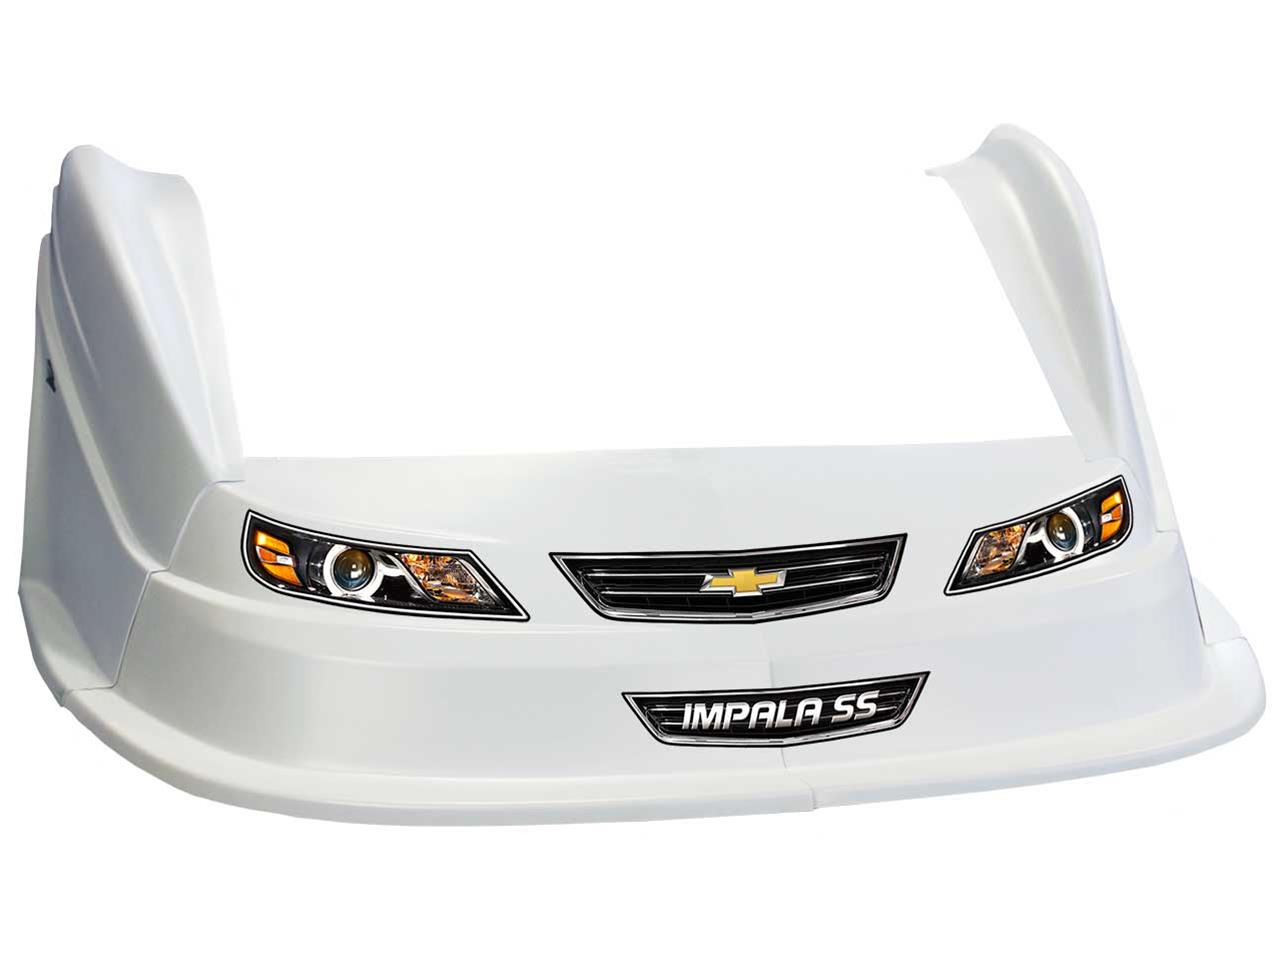 Picture of MD3 Evolution 1 Nose Kit - (Impala)